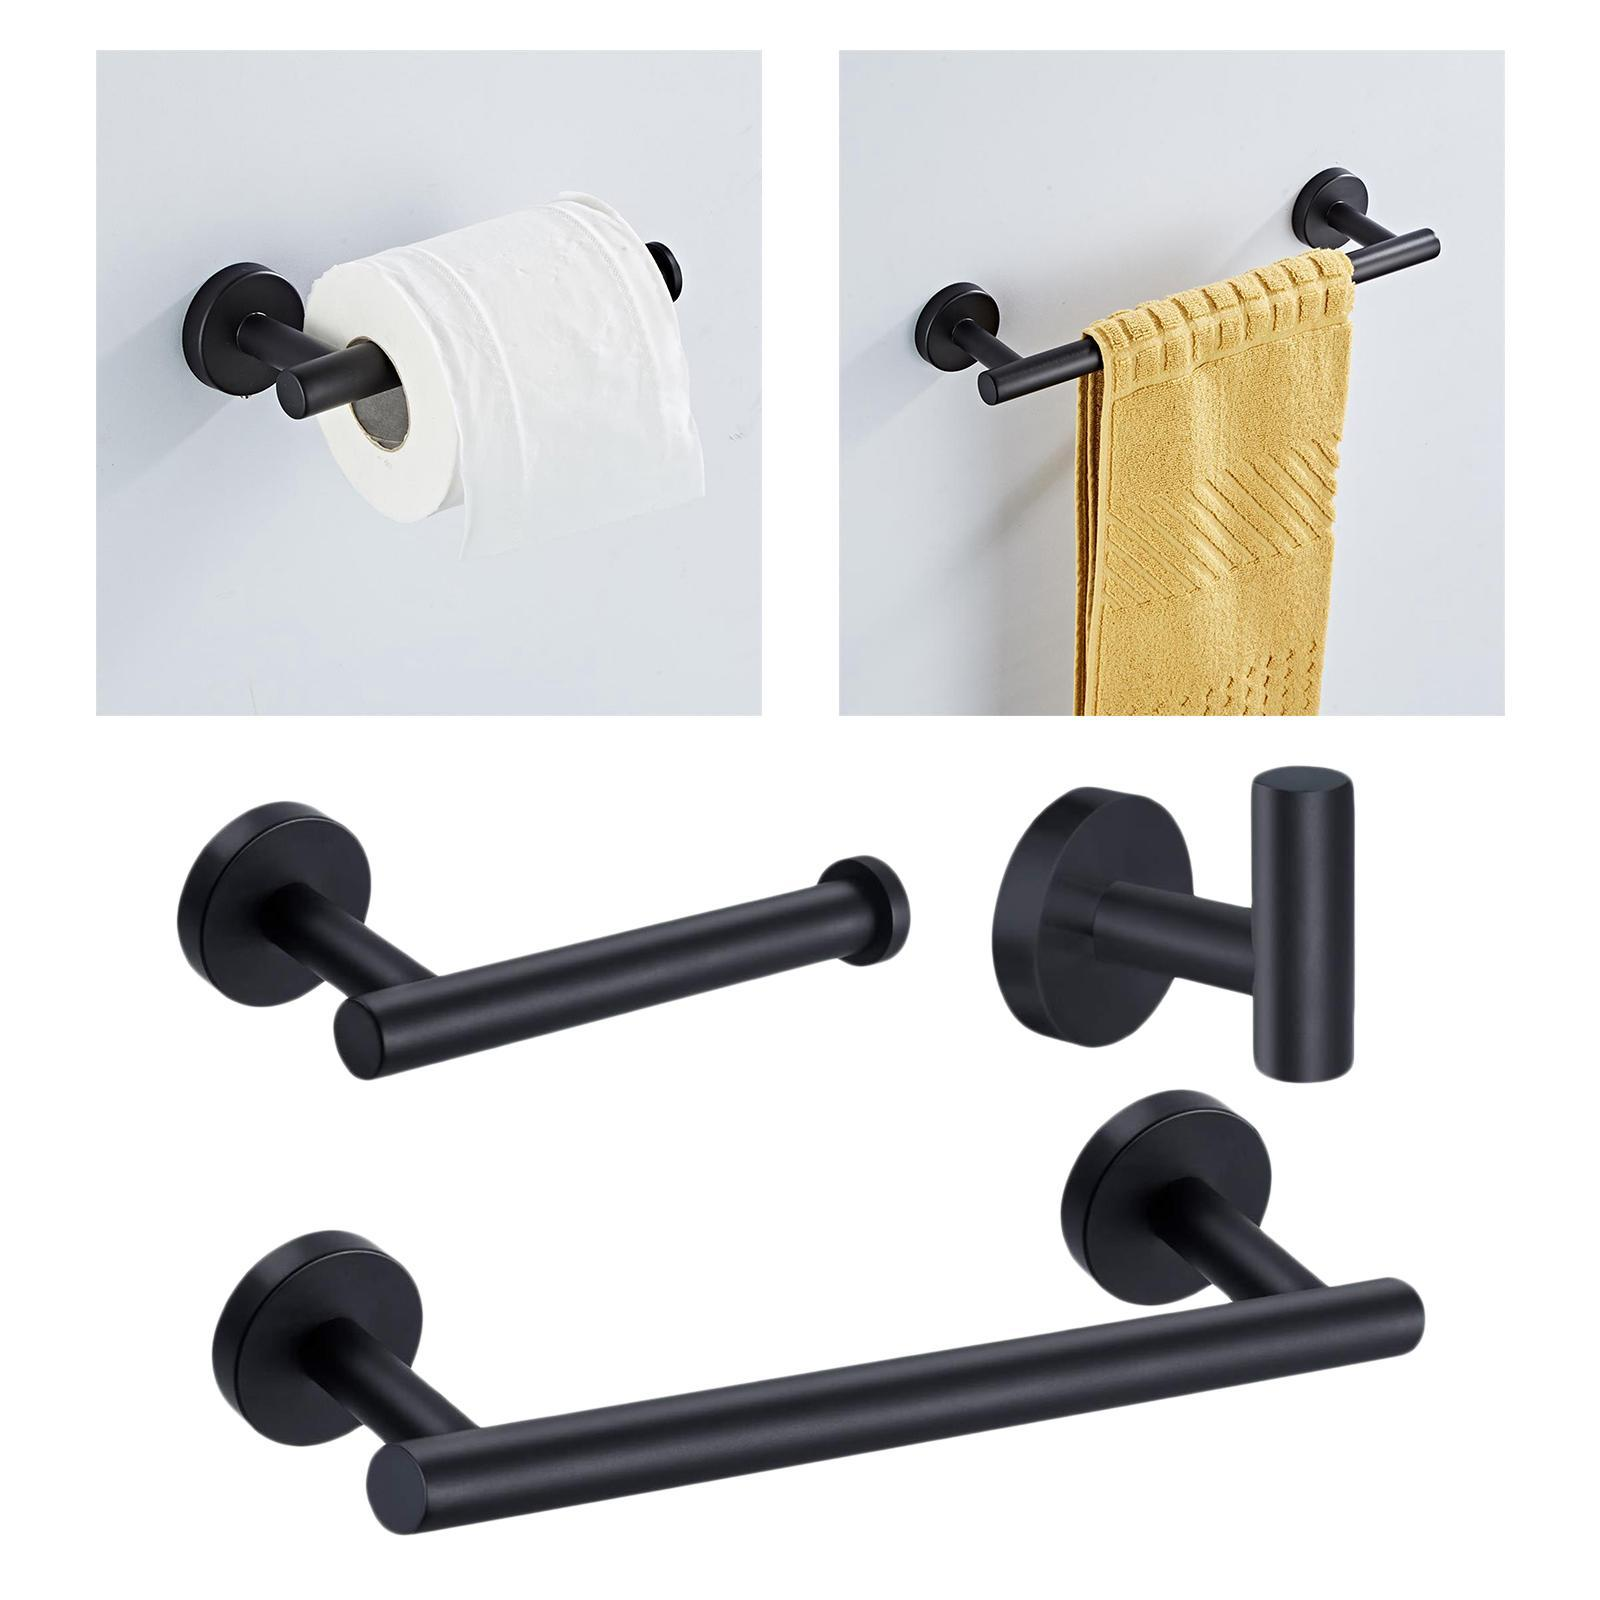 thumbnail 9 - 3x-Brushed-Robe-Hook-Toilet-Paper-Holder-12-034-Hand-Towel-Bar-Hardware-Set